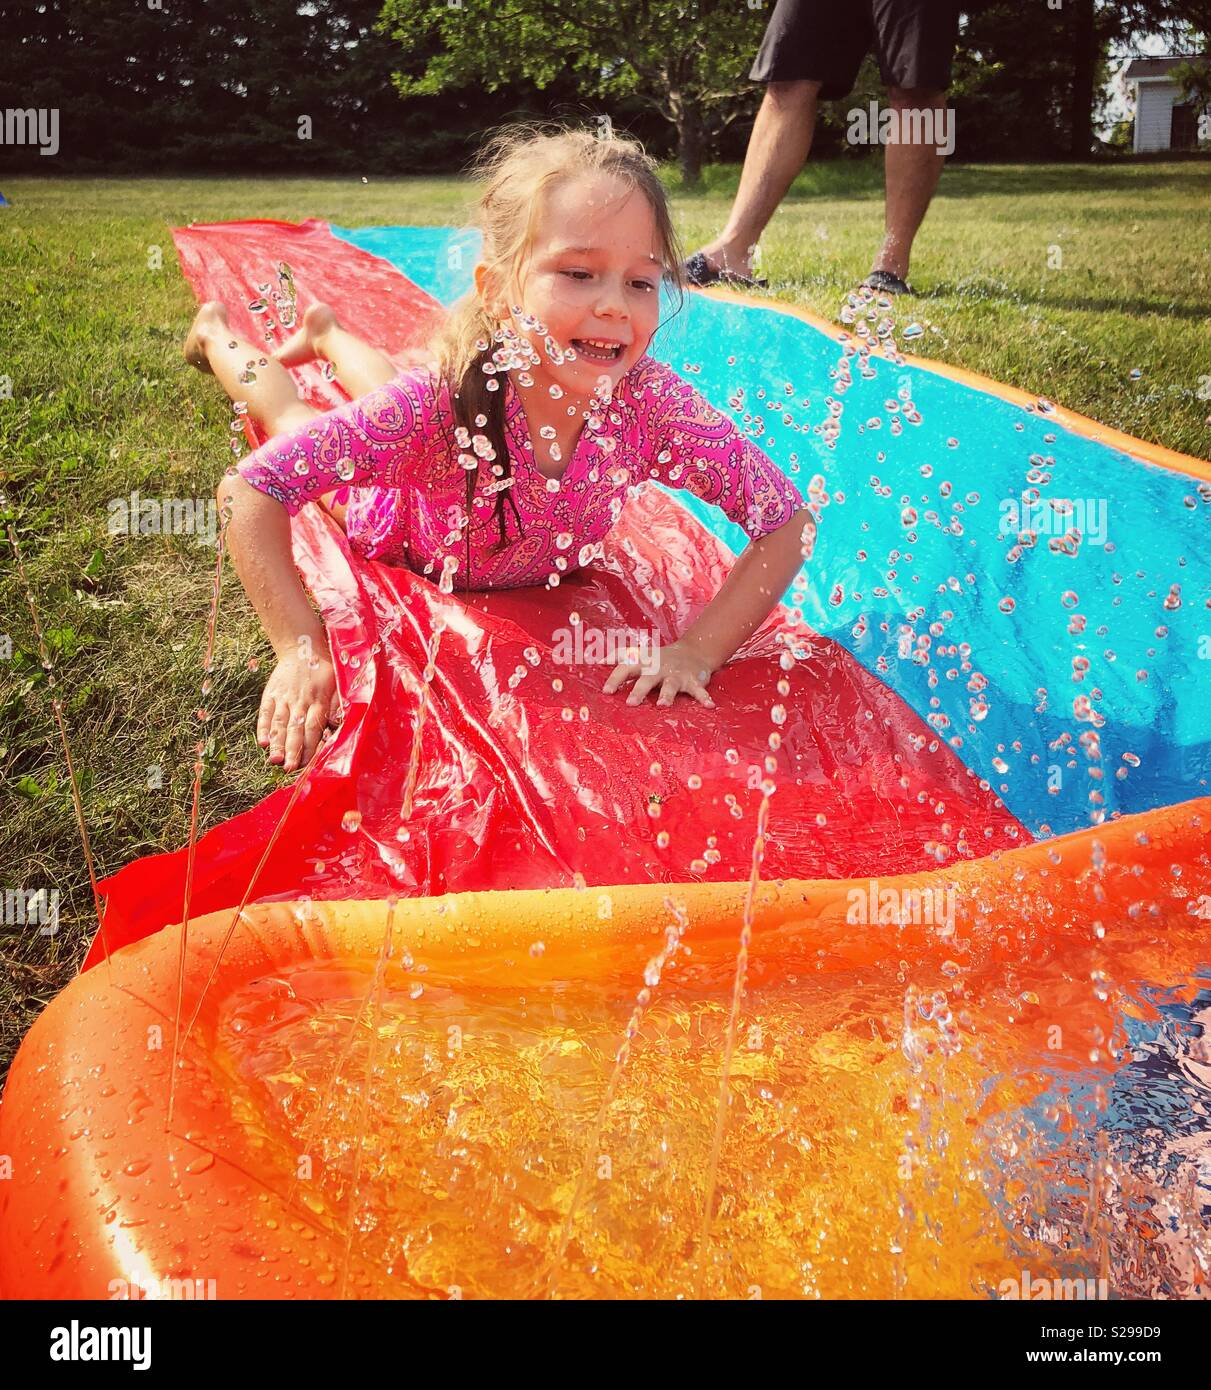 6 year old girl sliding down plastic water sprinkler slide toy outside - Stock Image